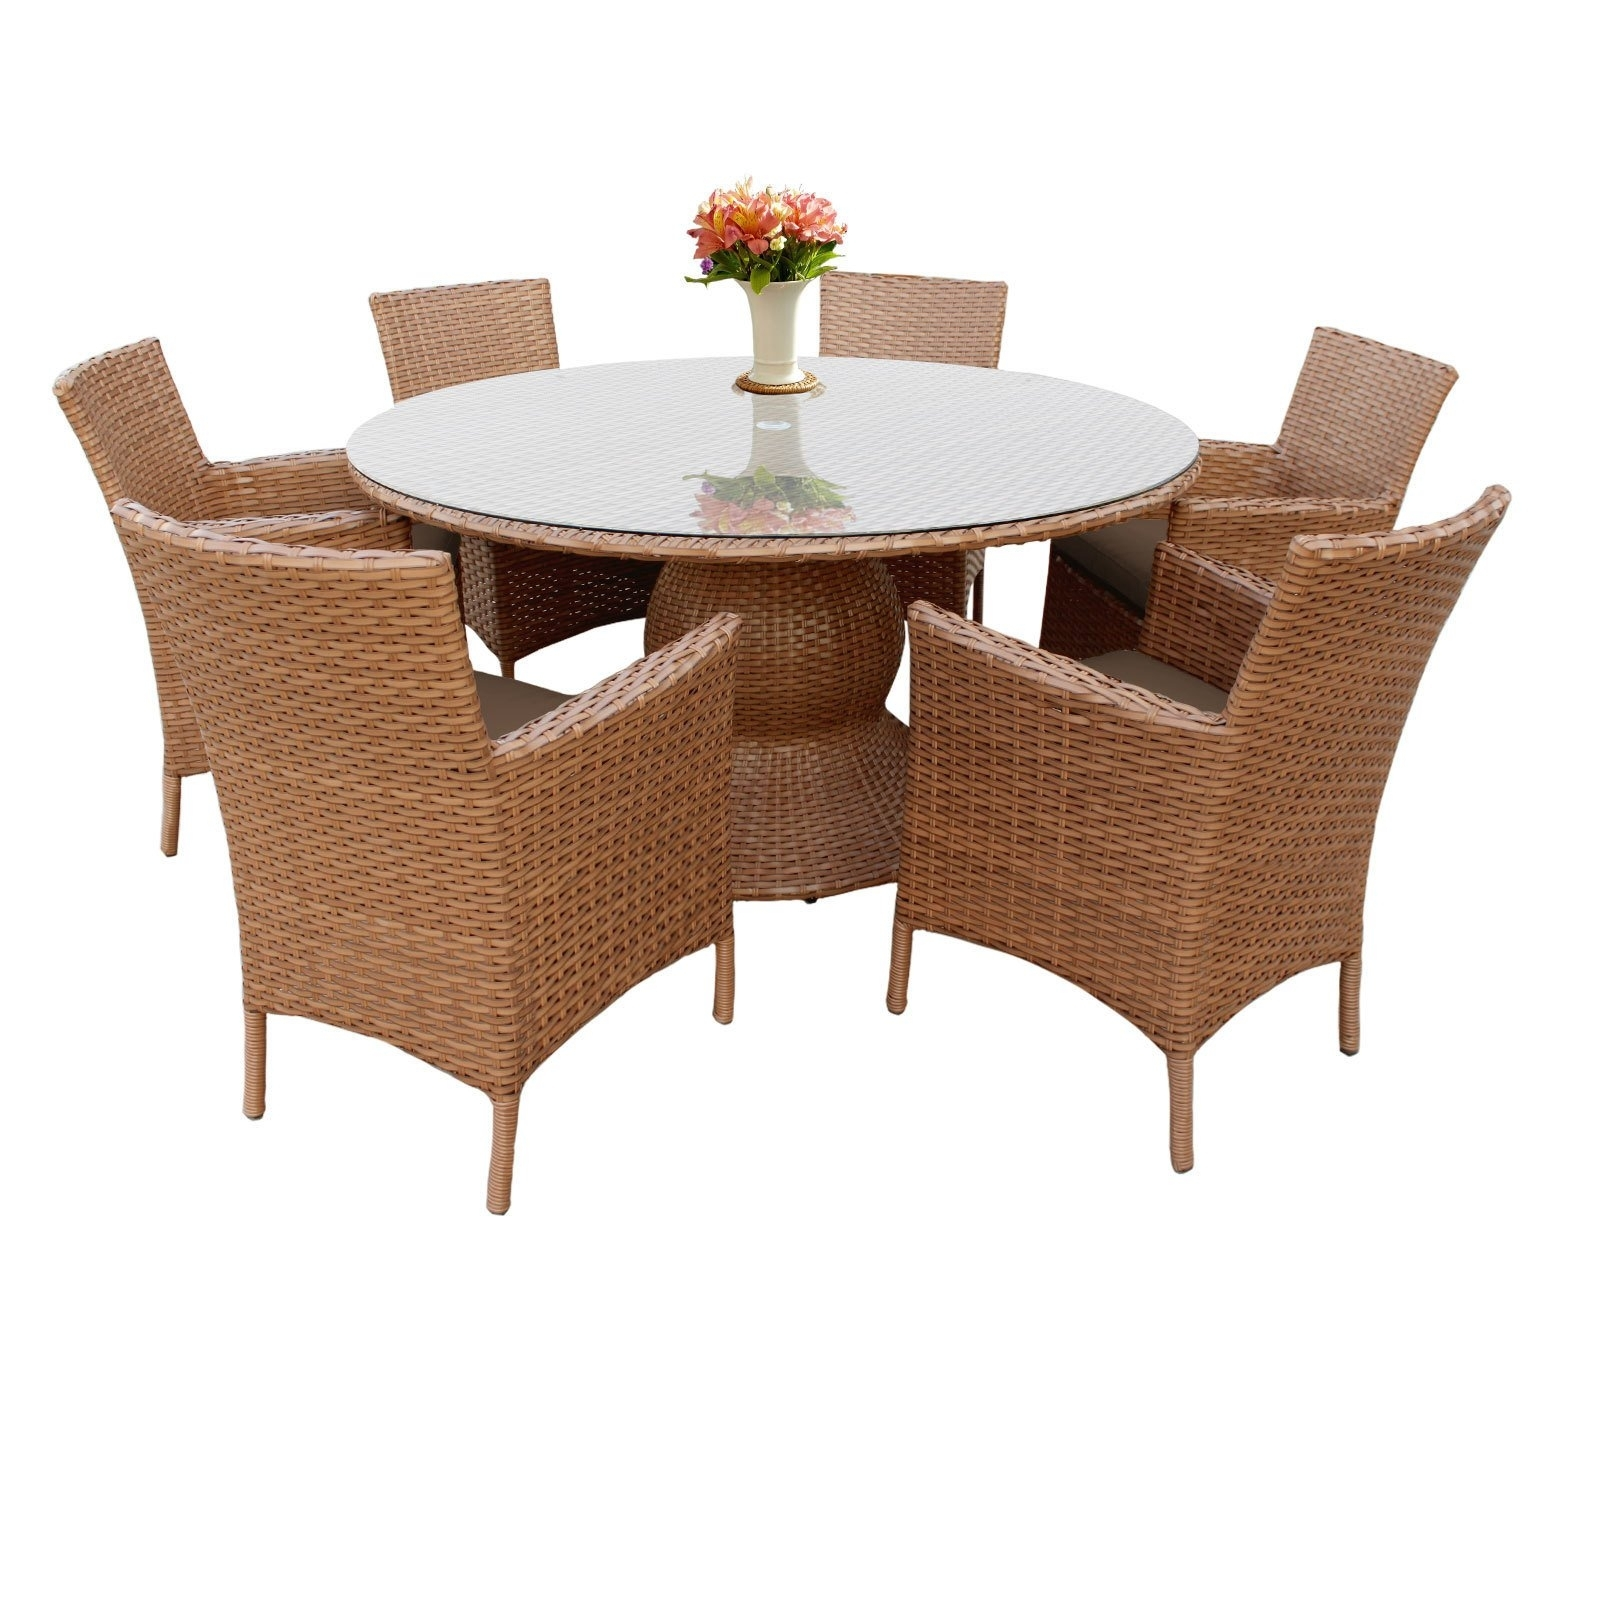 Shop Outdoor Home Bayou Wicker 60 Inch Outdoor Patio Dining Table Intended For Latest Valencia 72 Inch 7 Piece Dining Sets (View 18 of 20)